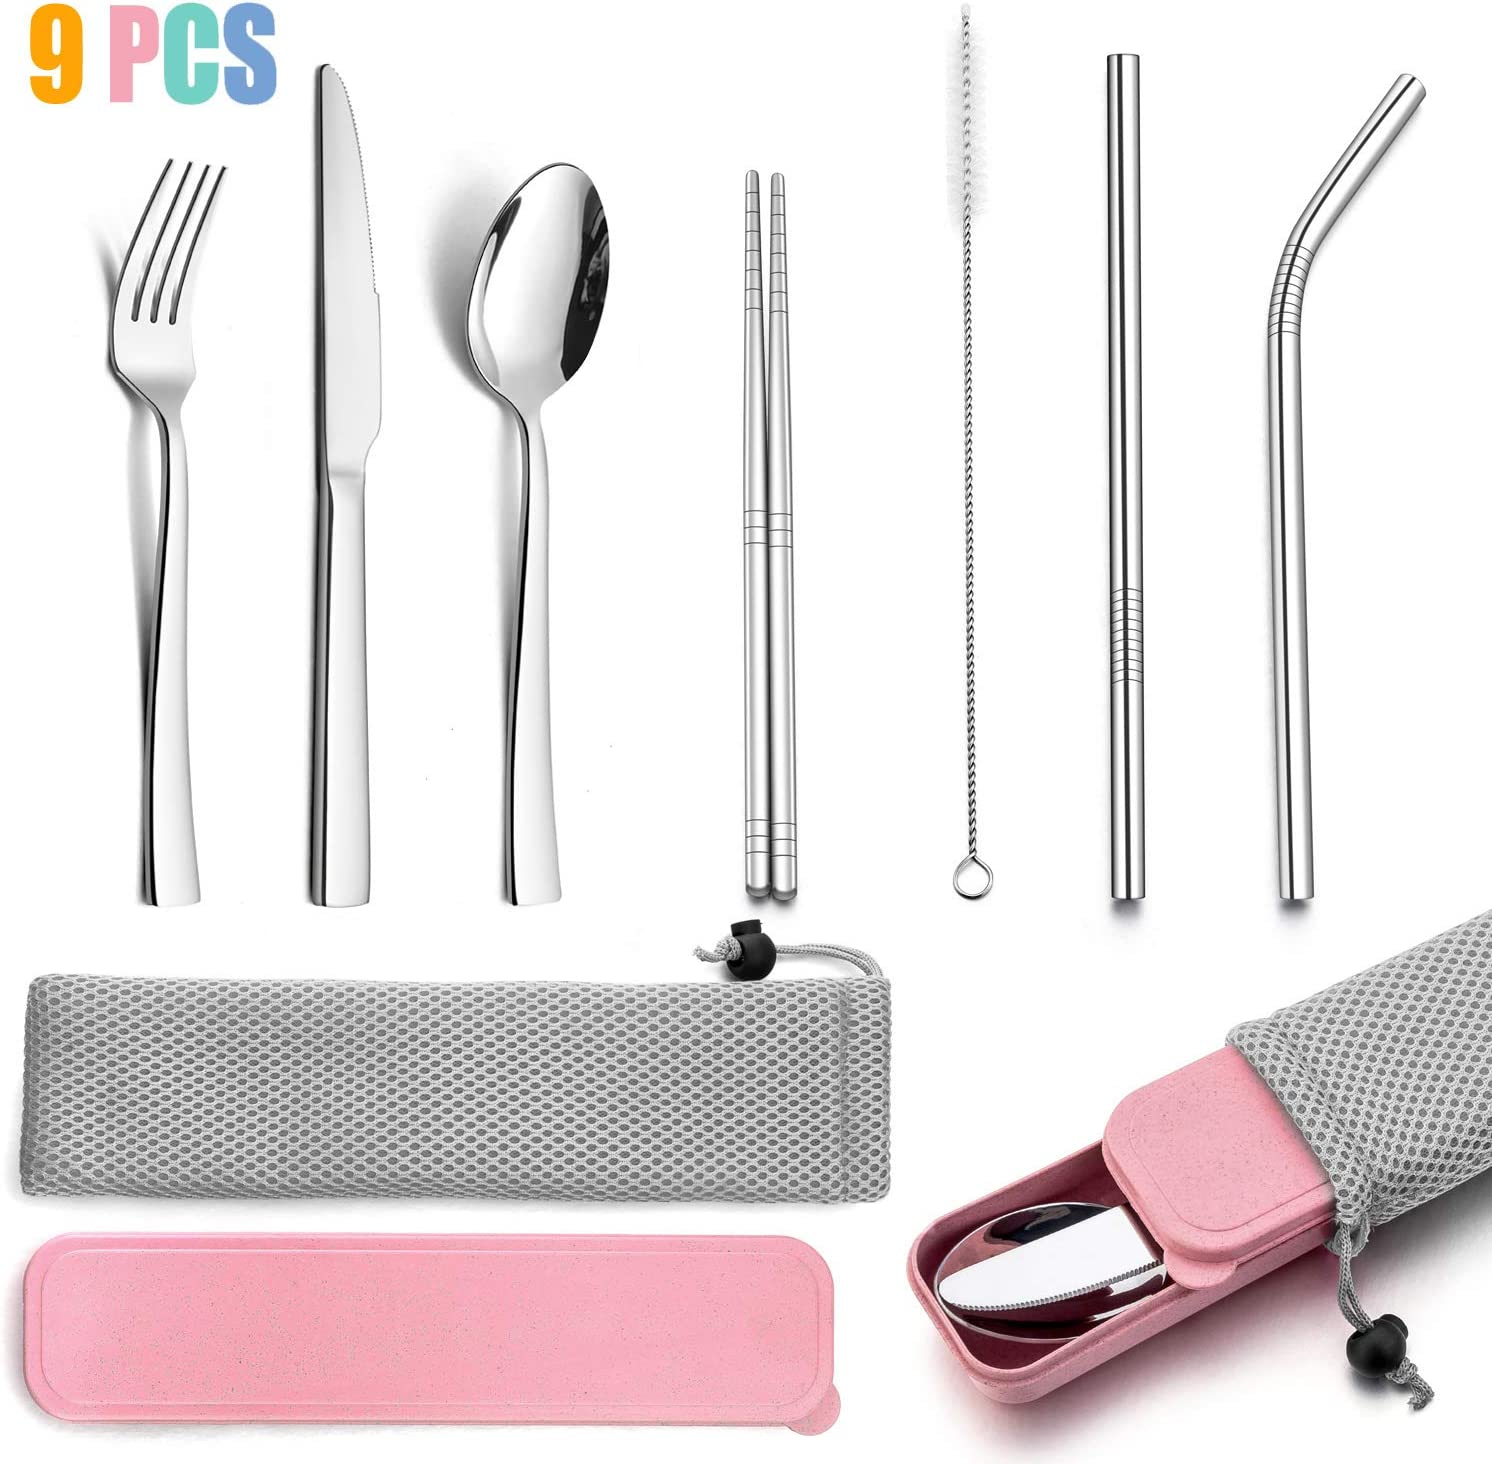 9-Piece Portable Travel Silverware Utensils with Case, HaWare Stainless Steel Flatware Set for Camping Office School Lunch, Reusable Cutlery Including Knife Fork Spoon, Dishwasher Safe(Pink)